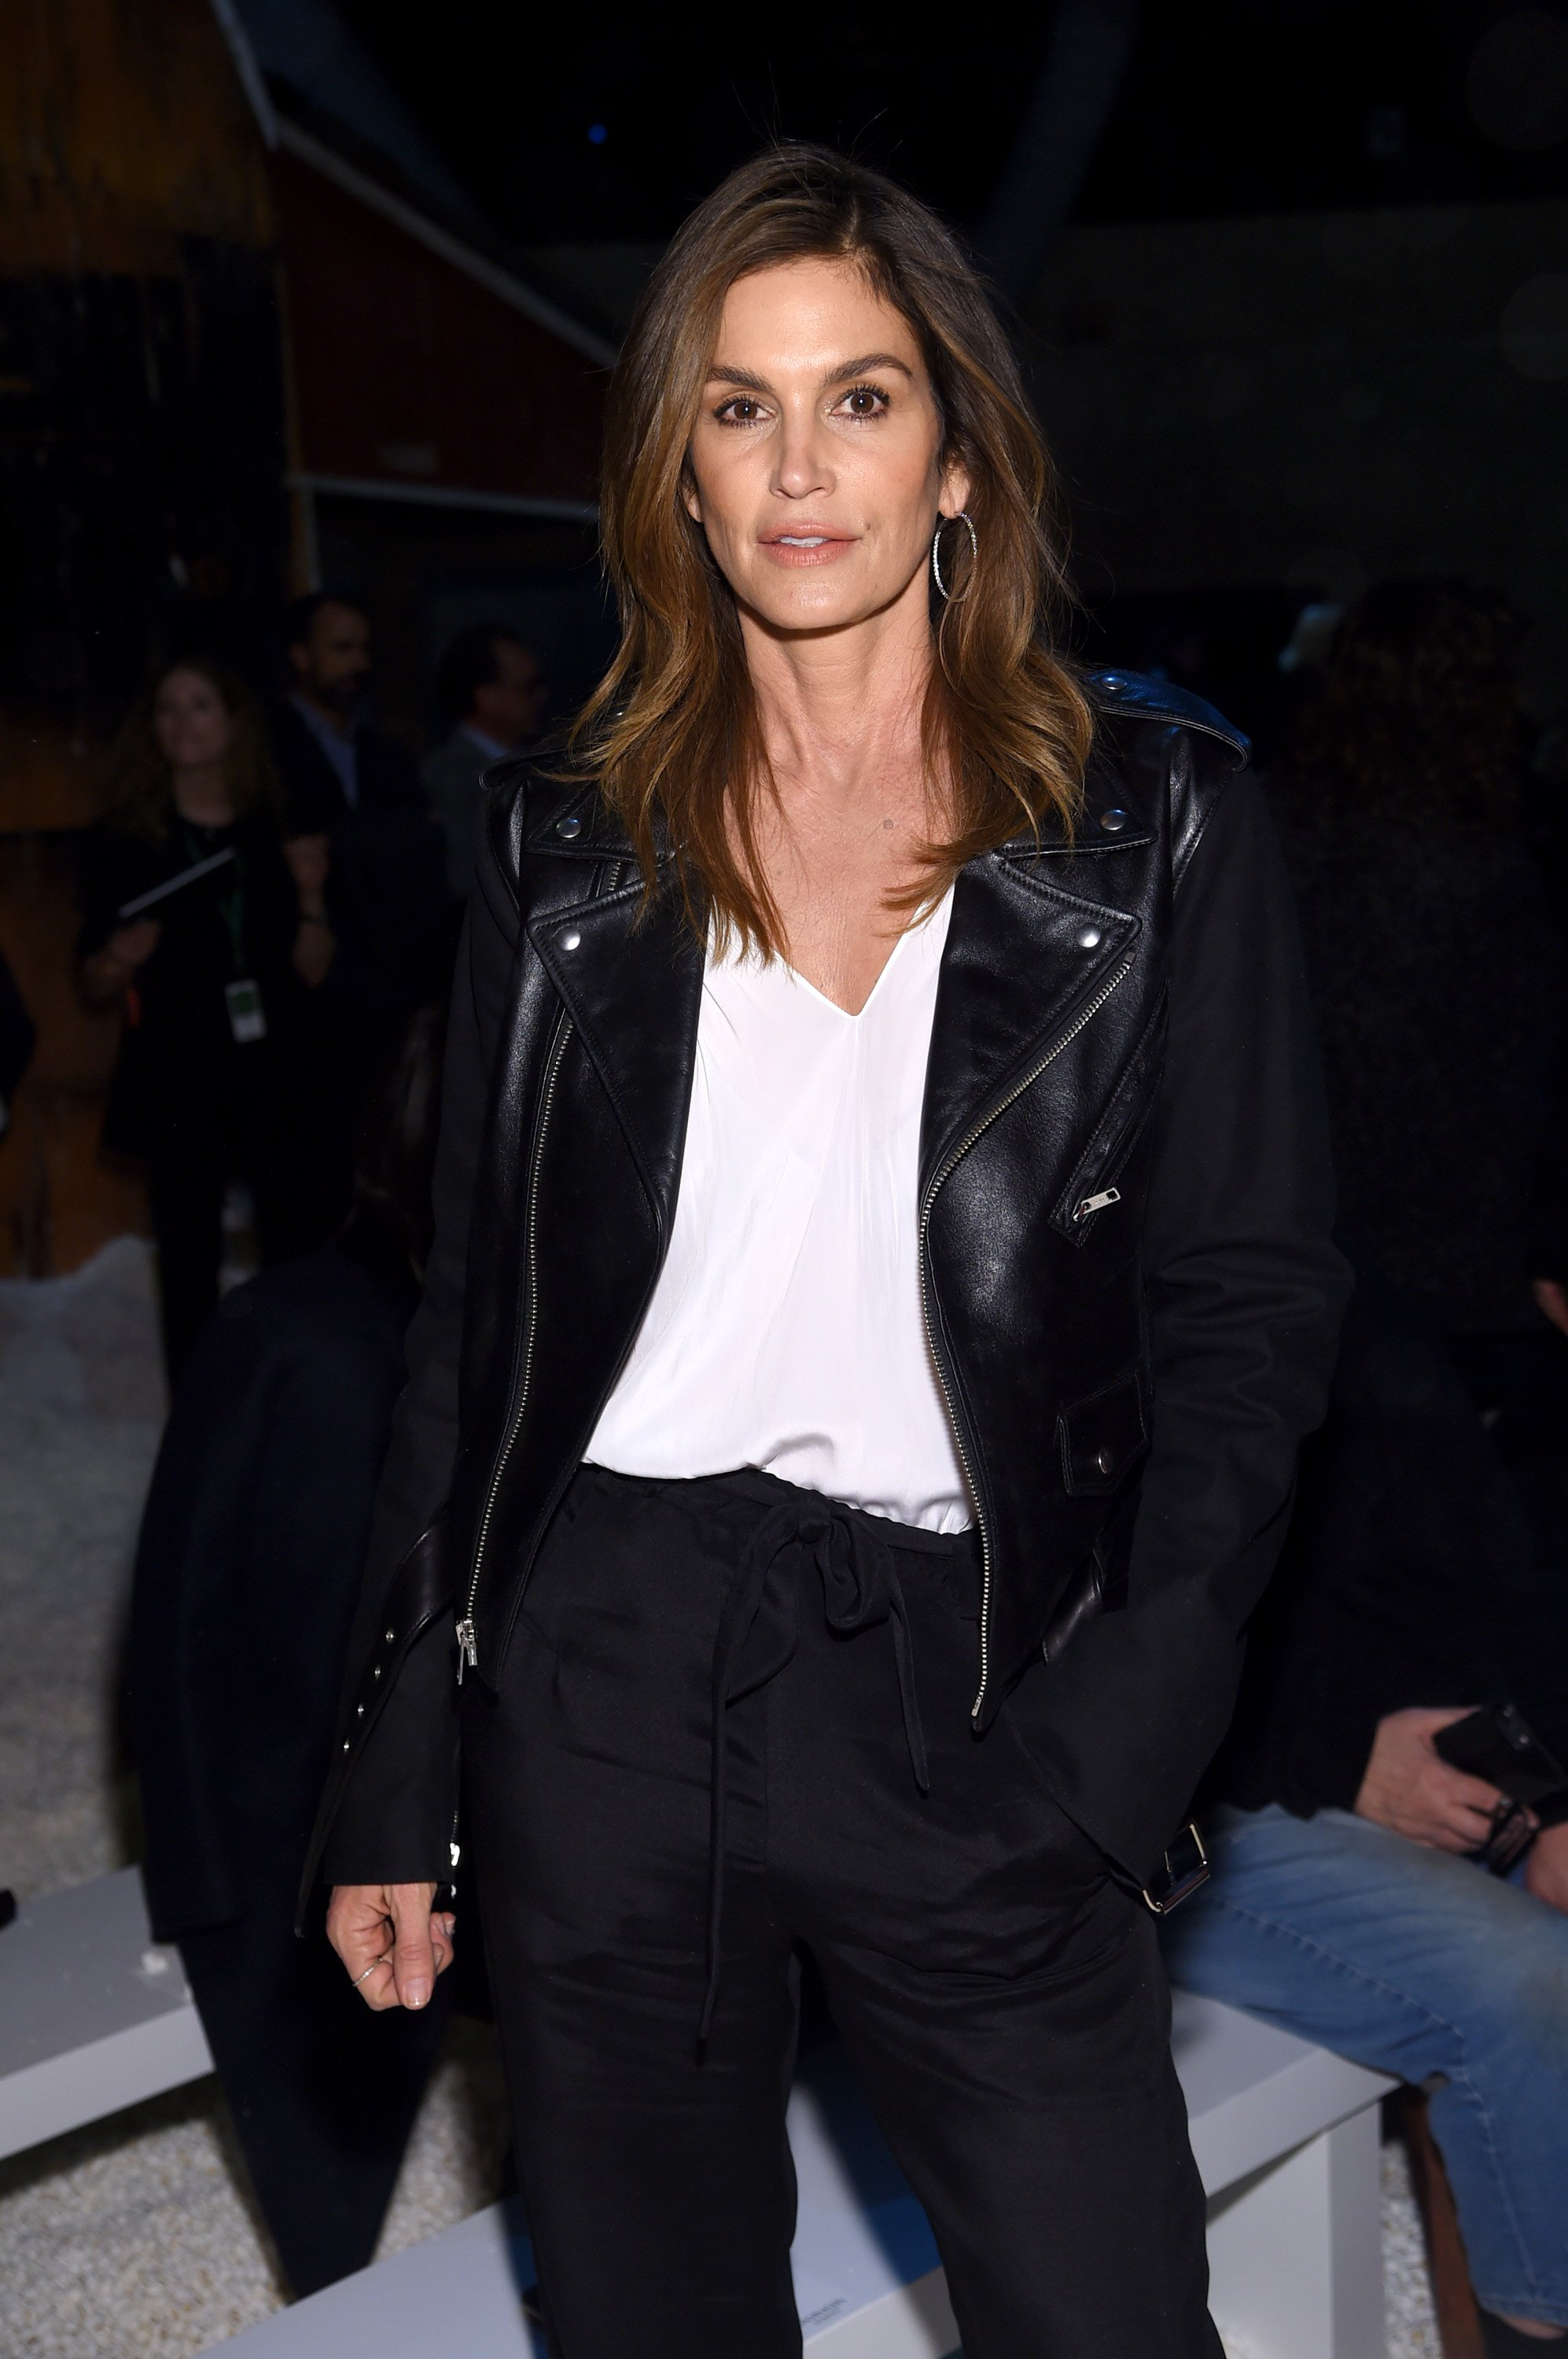 Cindy Crawford attends the Calvin Klein Collection front row during New York Fashion Week at New York Stock Exchange on February 13, 2018. | Photo: Getty Images.